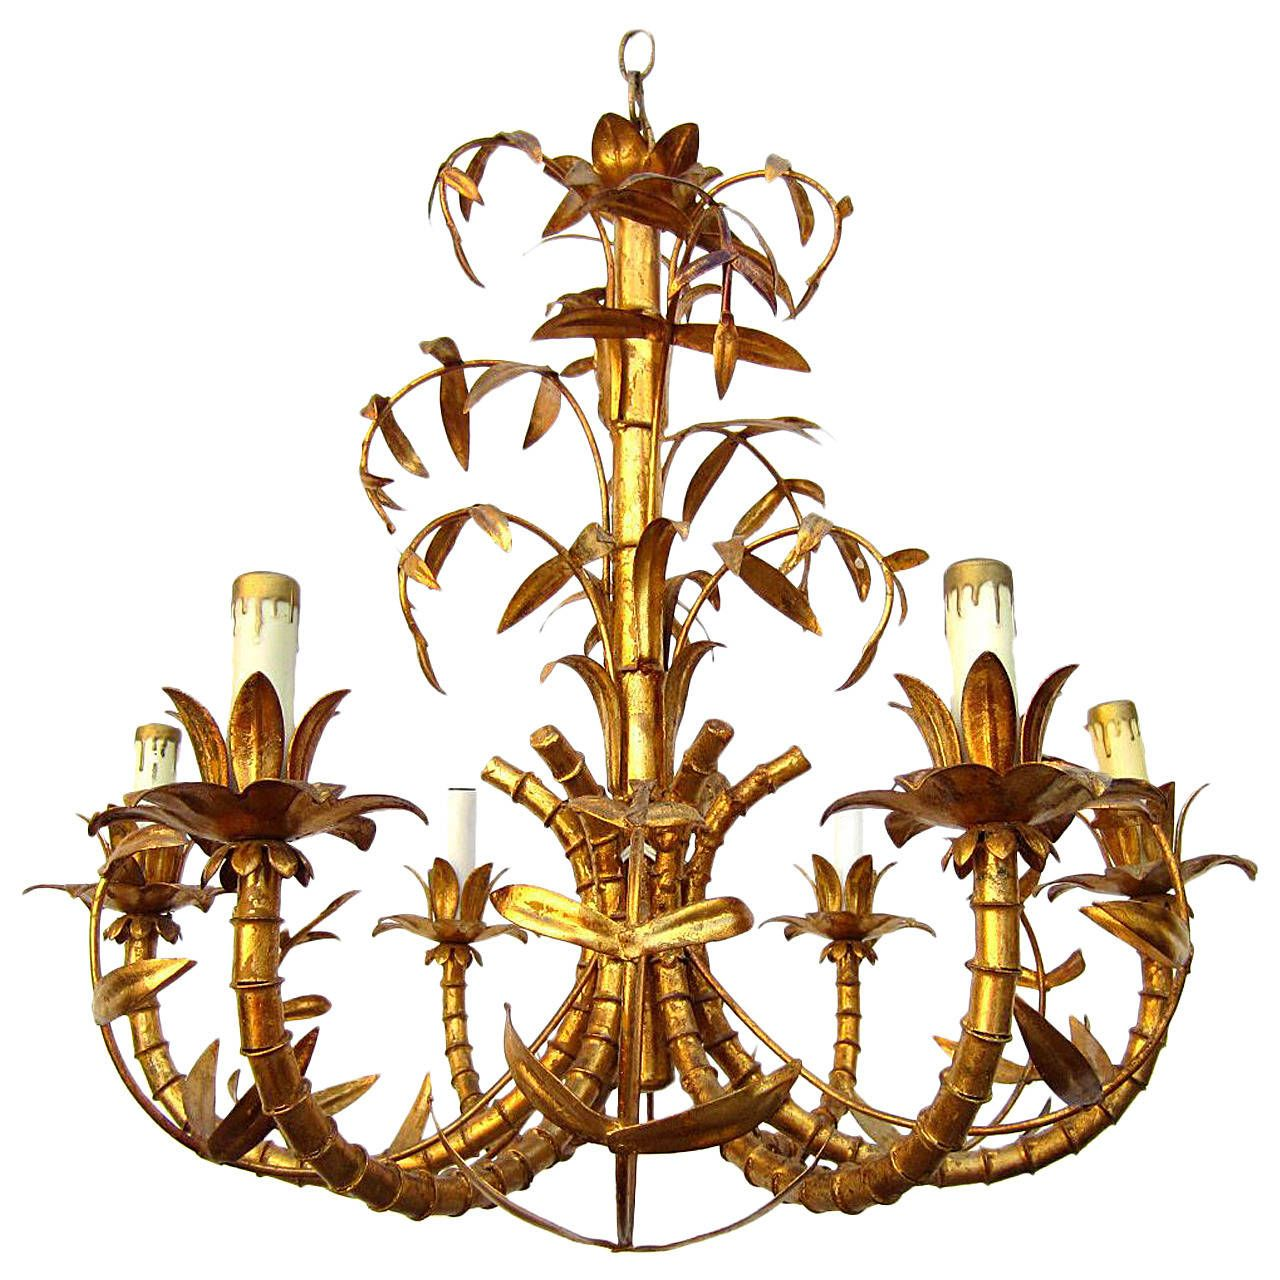 Hollywood regency gold gilded faux bamboo chandelier tole italy hollywood regency gold gilded faux bamboo chandelier tole italy 1950s arubaitofo Images